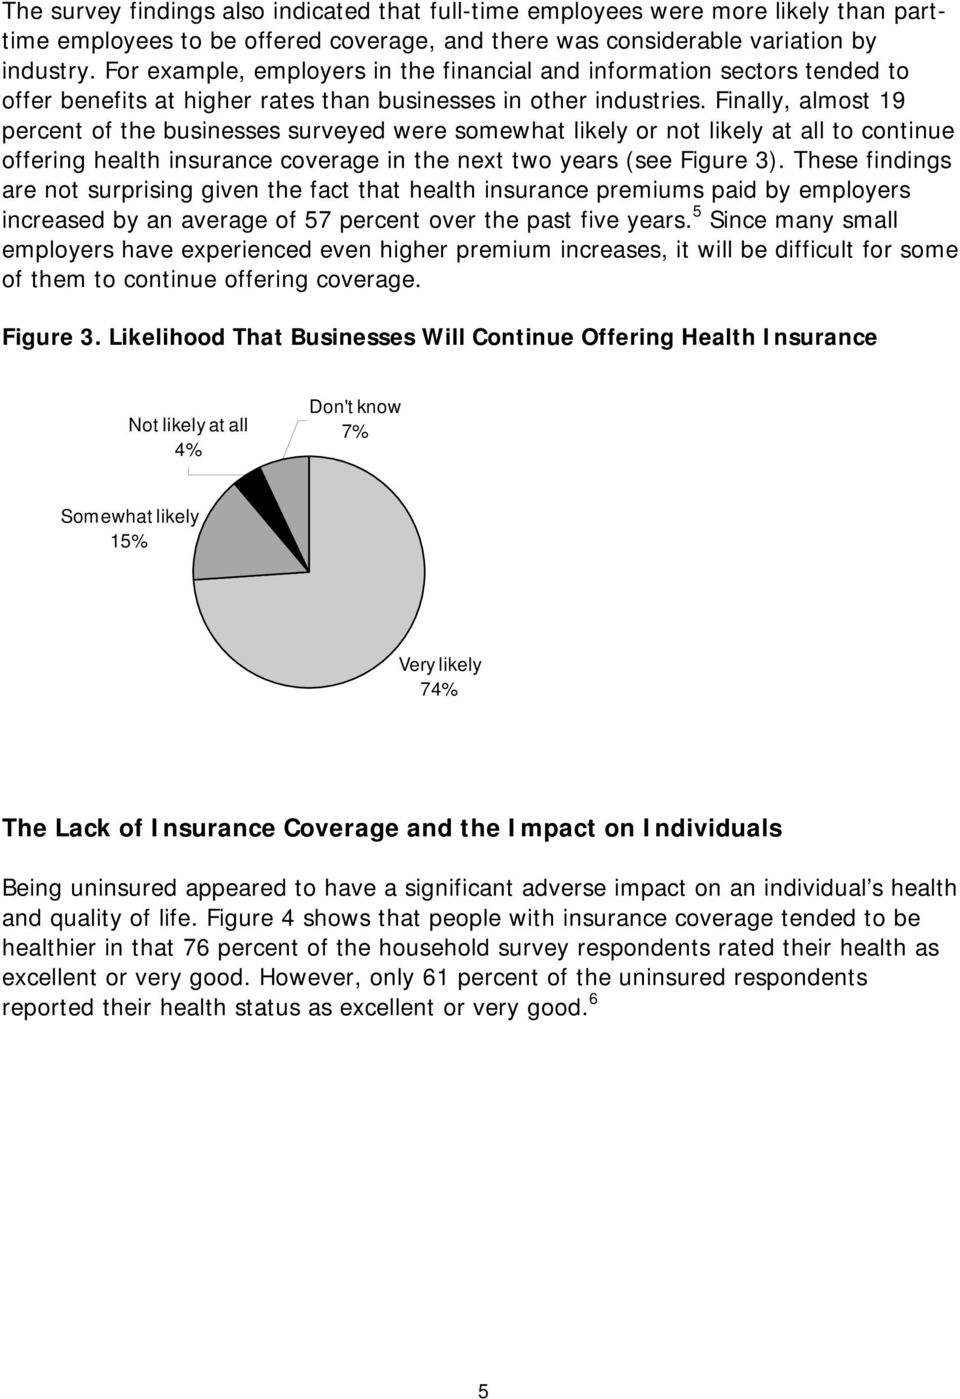 Finally, almost 19 percent of the businesses surveyed were somewhat likely or not likely at all to continue offering health insurance coverage in the next two years (see Figure 3).